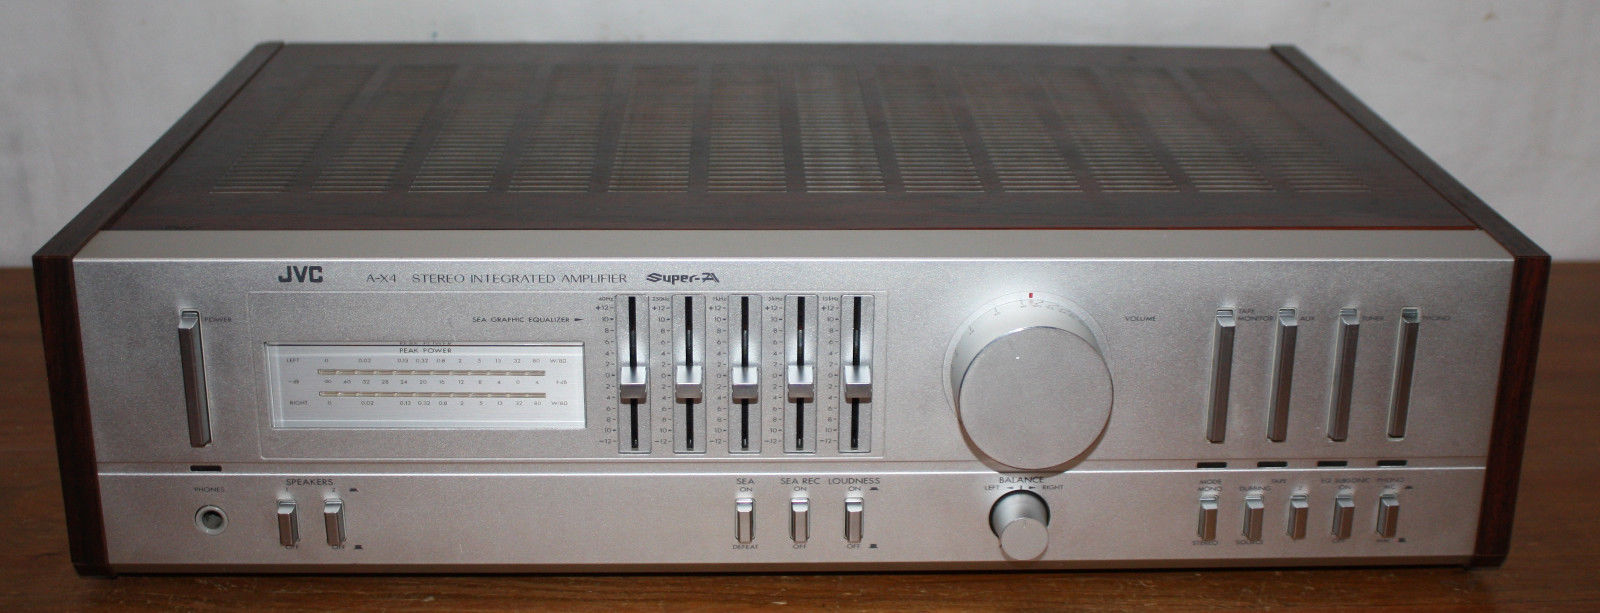 JVC Stereo Integrated Amplifier A-X4, Stereo, Super-A, Graphic Equalizer, Phono